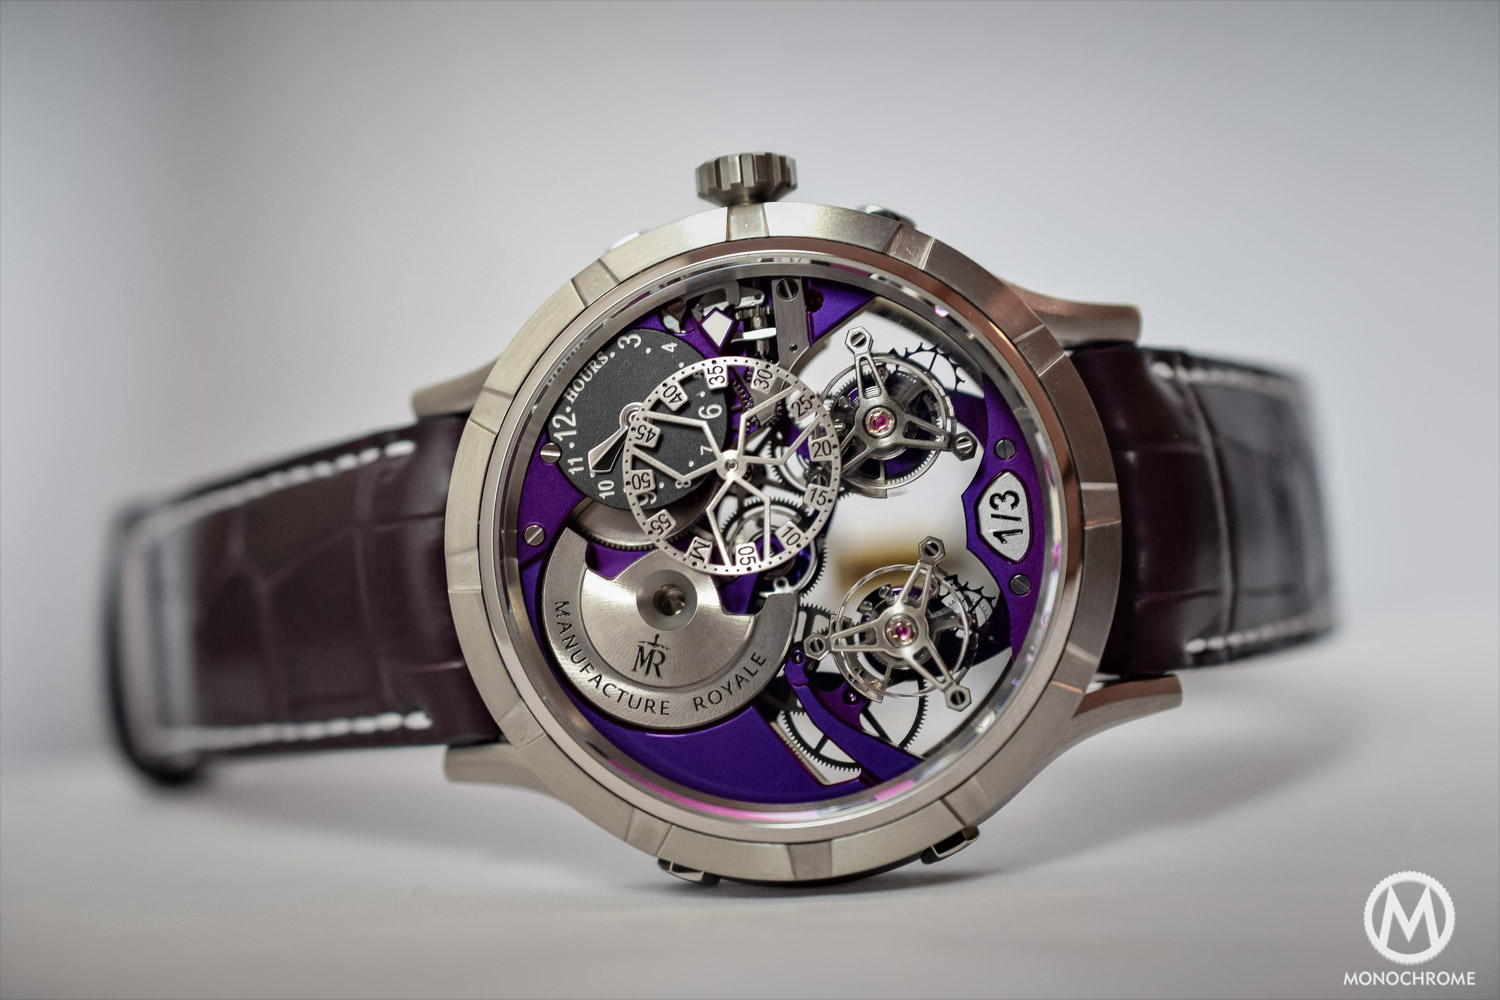 Manufacture Royale 1770 Micromegas Revolution Limited Editions